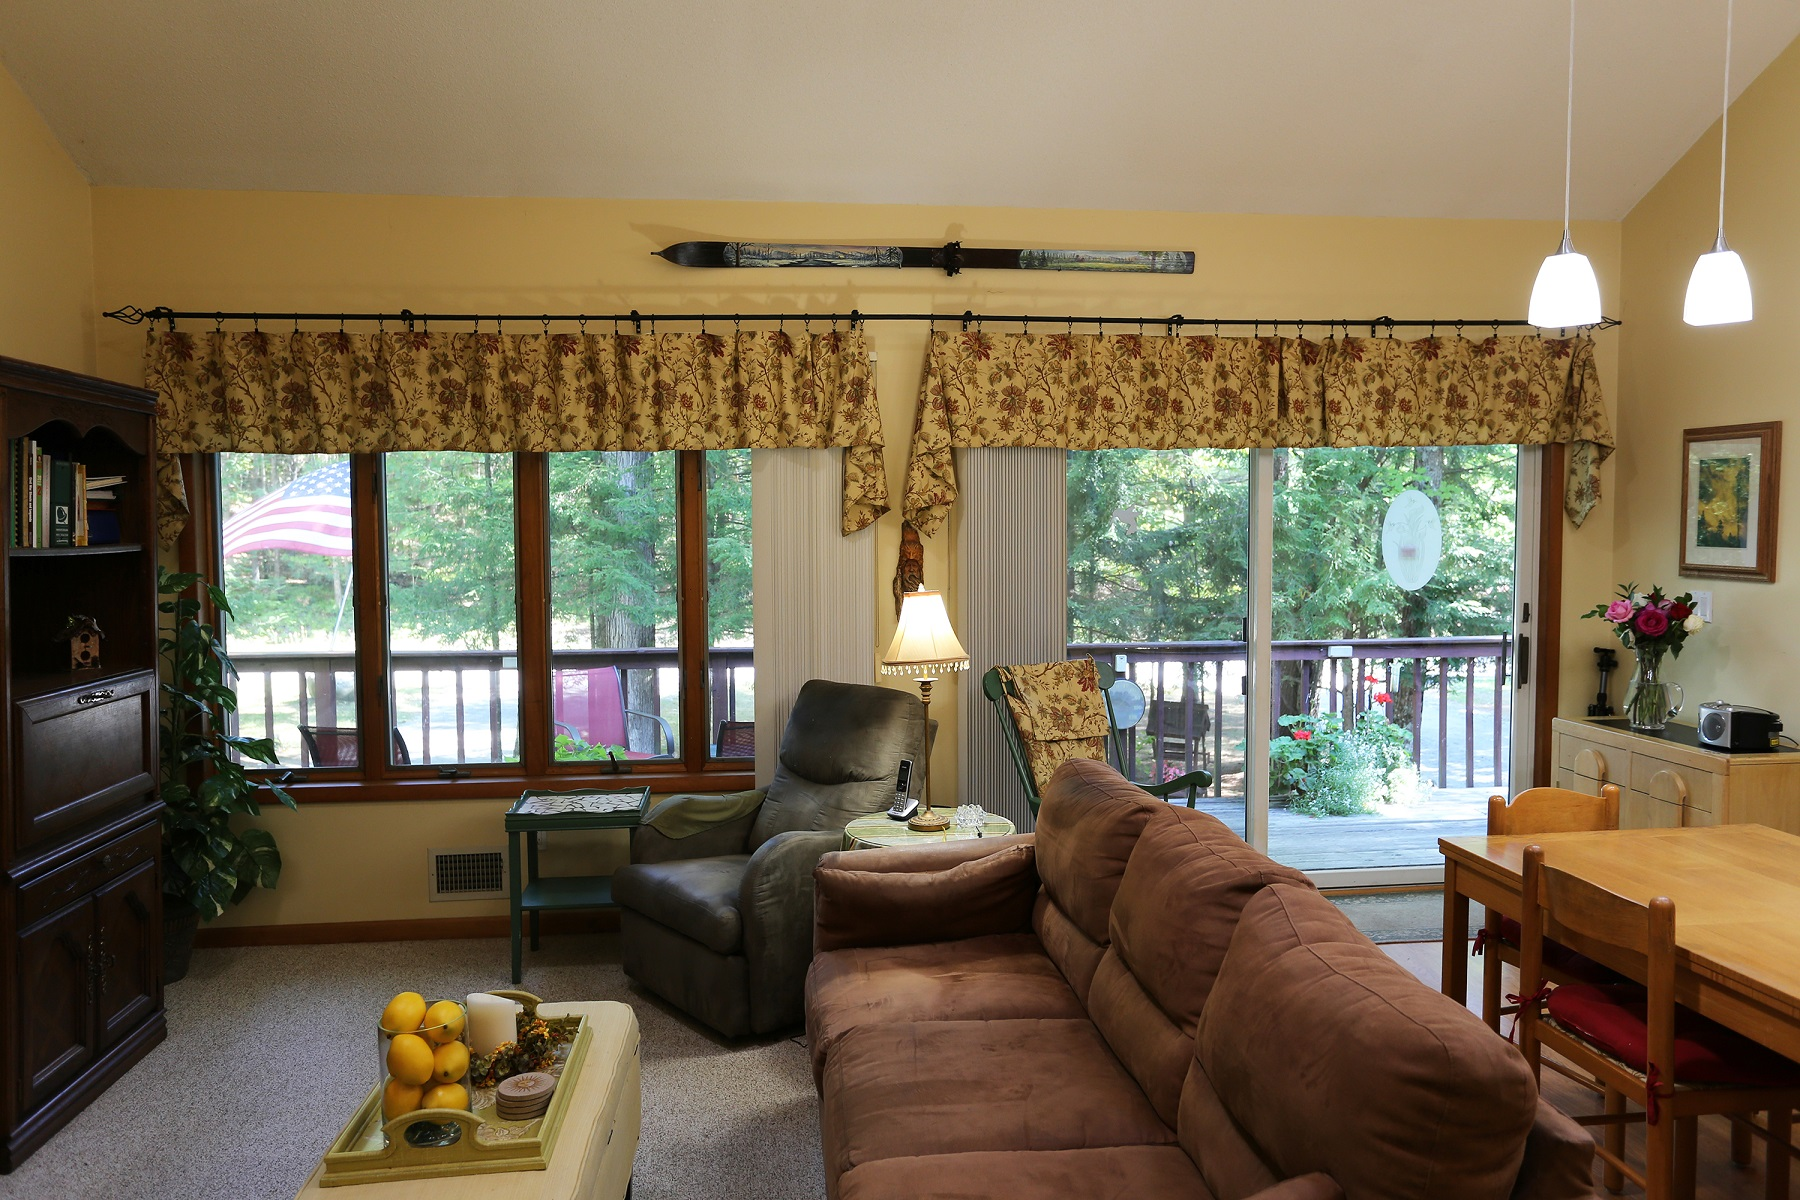 Additional photo for property listing at Tranquil Contemporary 53  Pine Orchard Rd Hague, New York 12836 United States